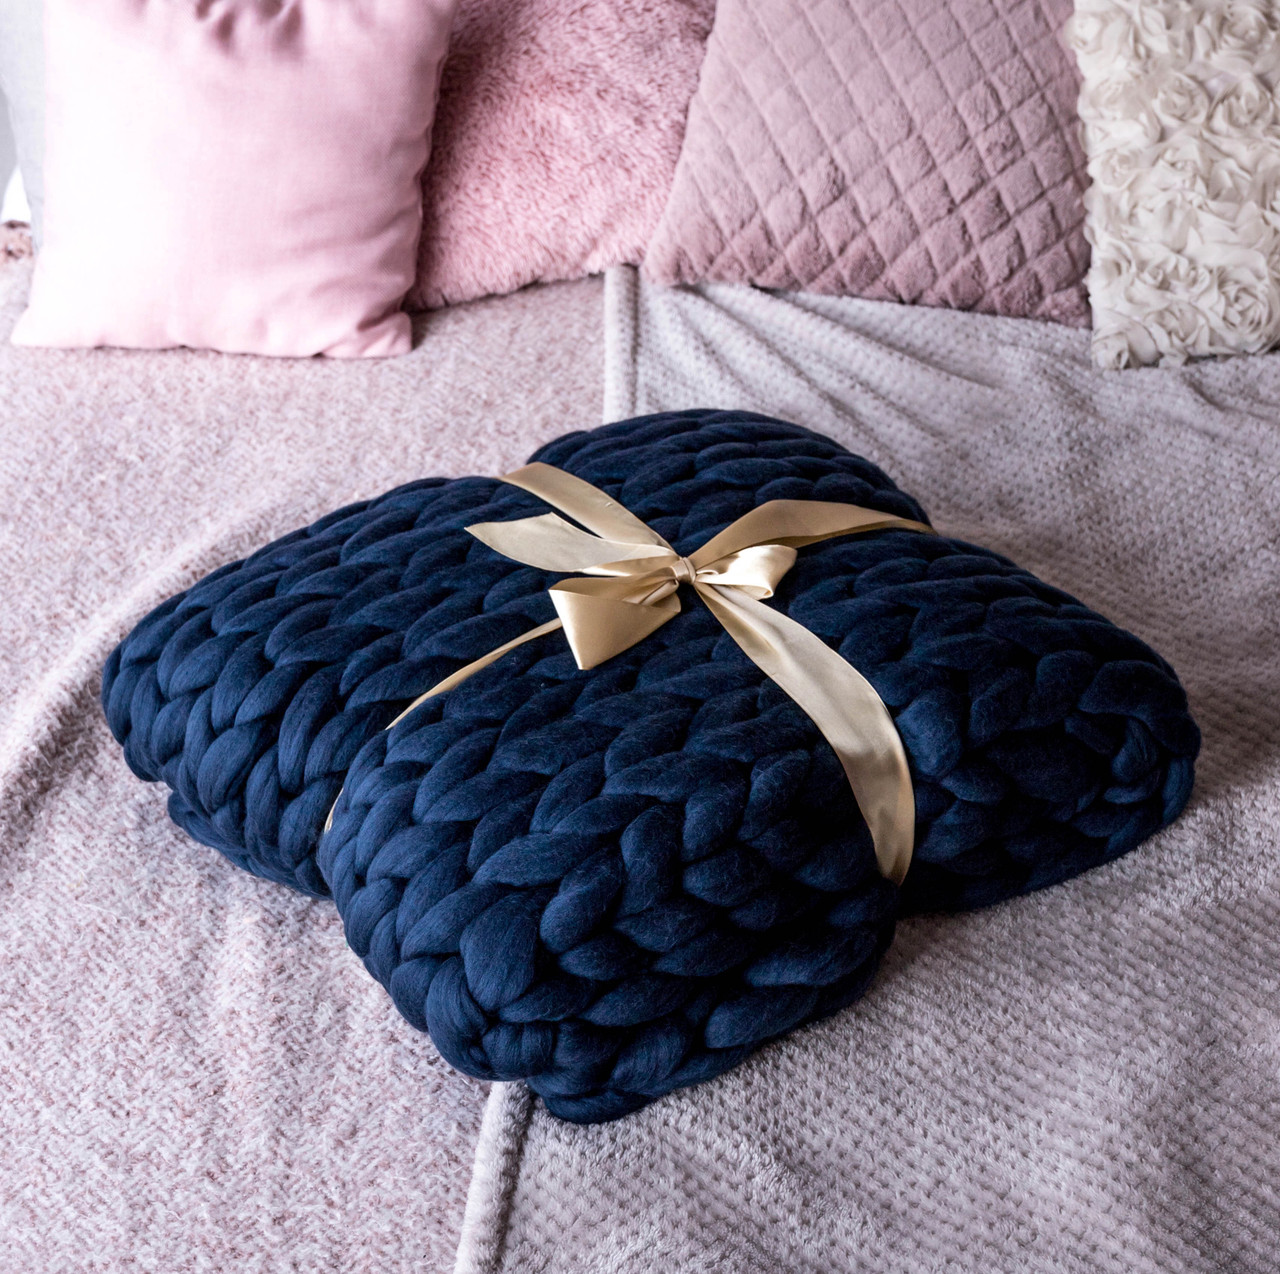 Adding textural elements to your interior design with chunky wool